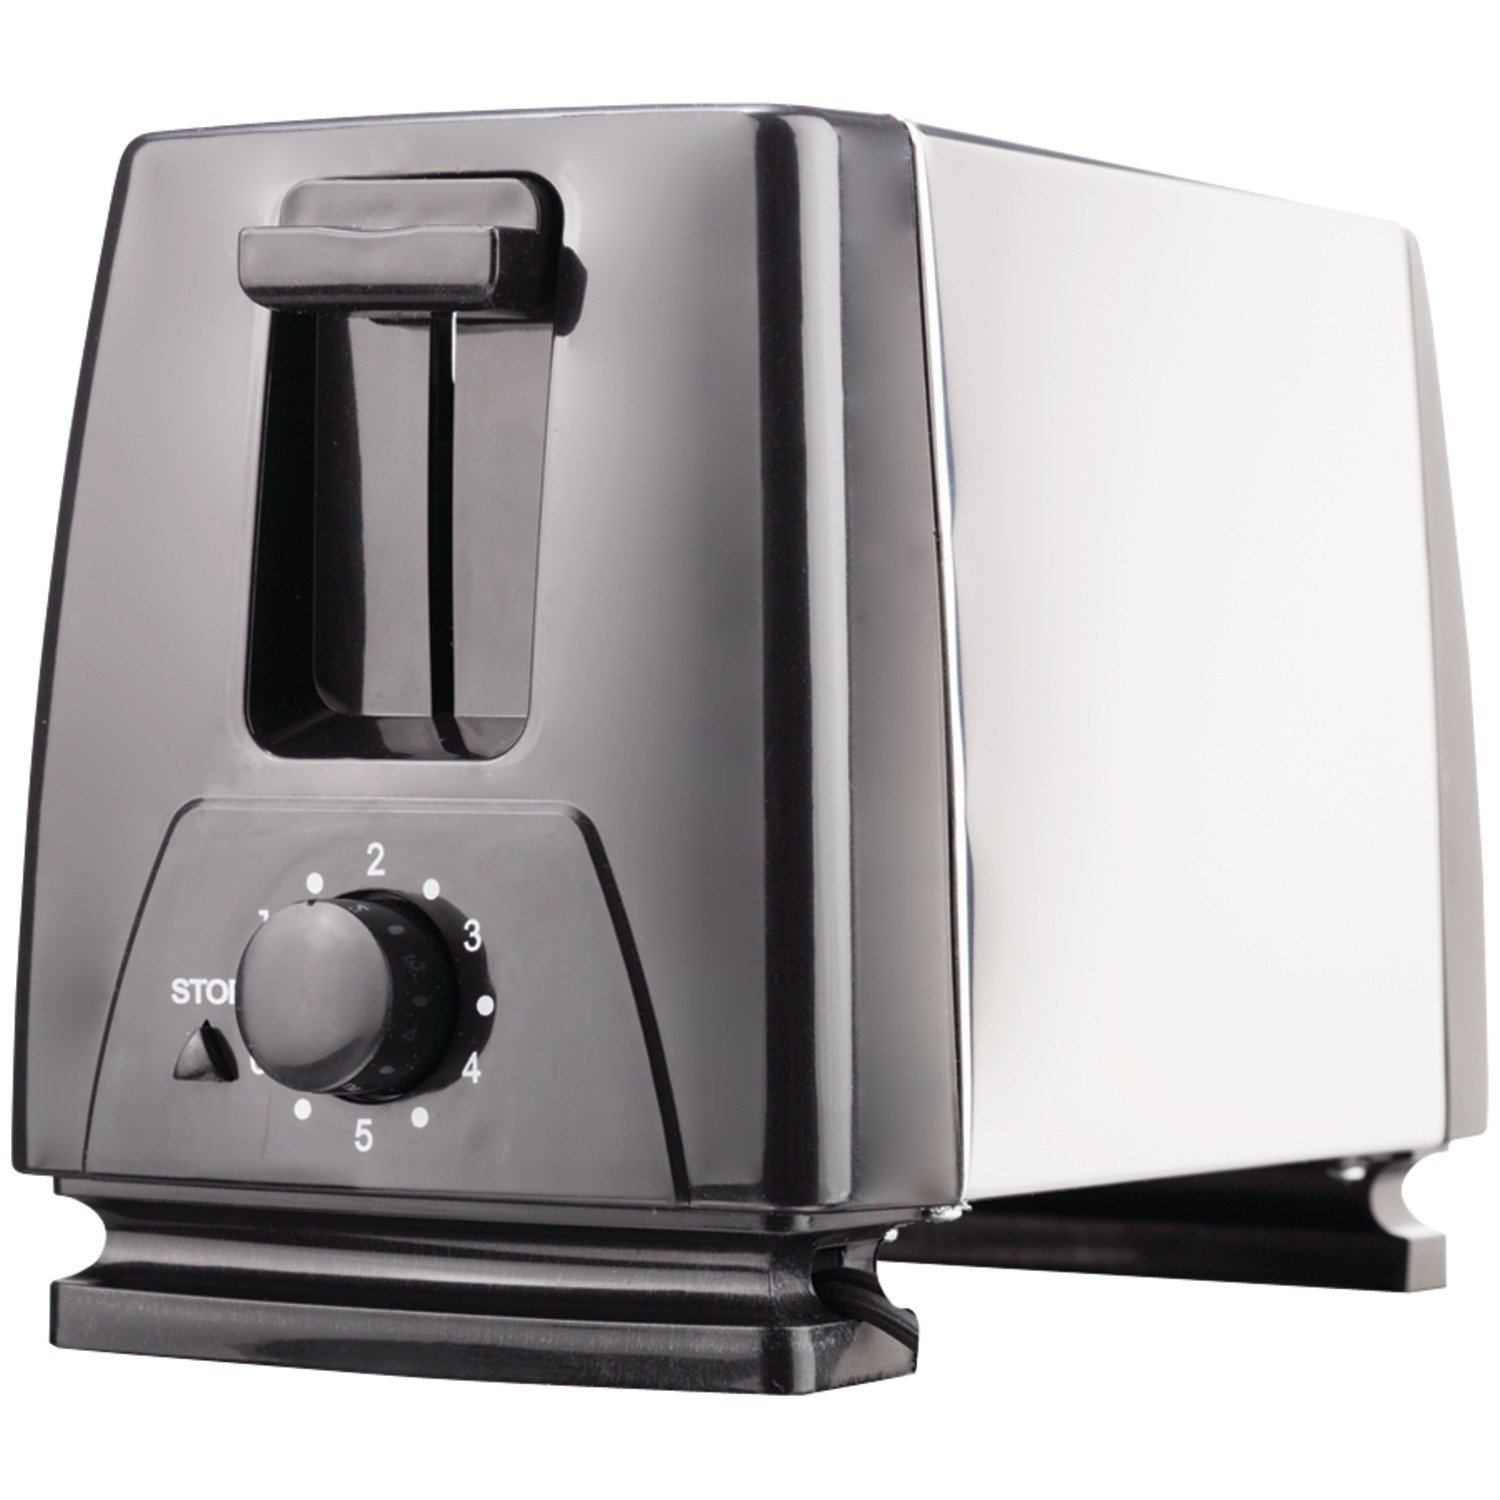 Brentwood TS-280S Toaster Extra Wide Slot, 2-Slice, Stainless Steel by Brentwood